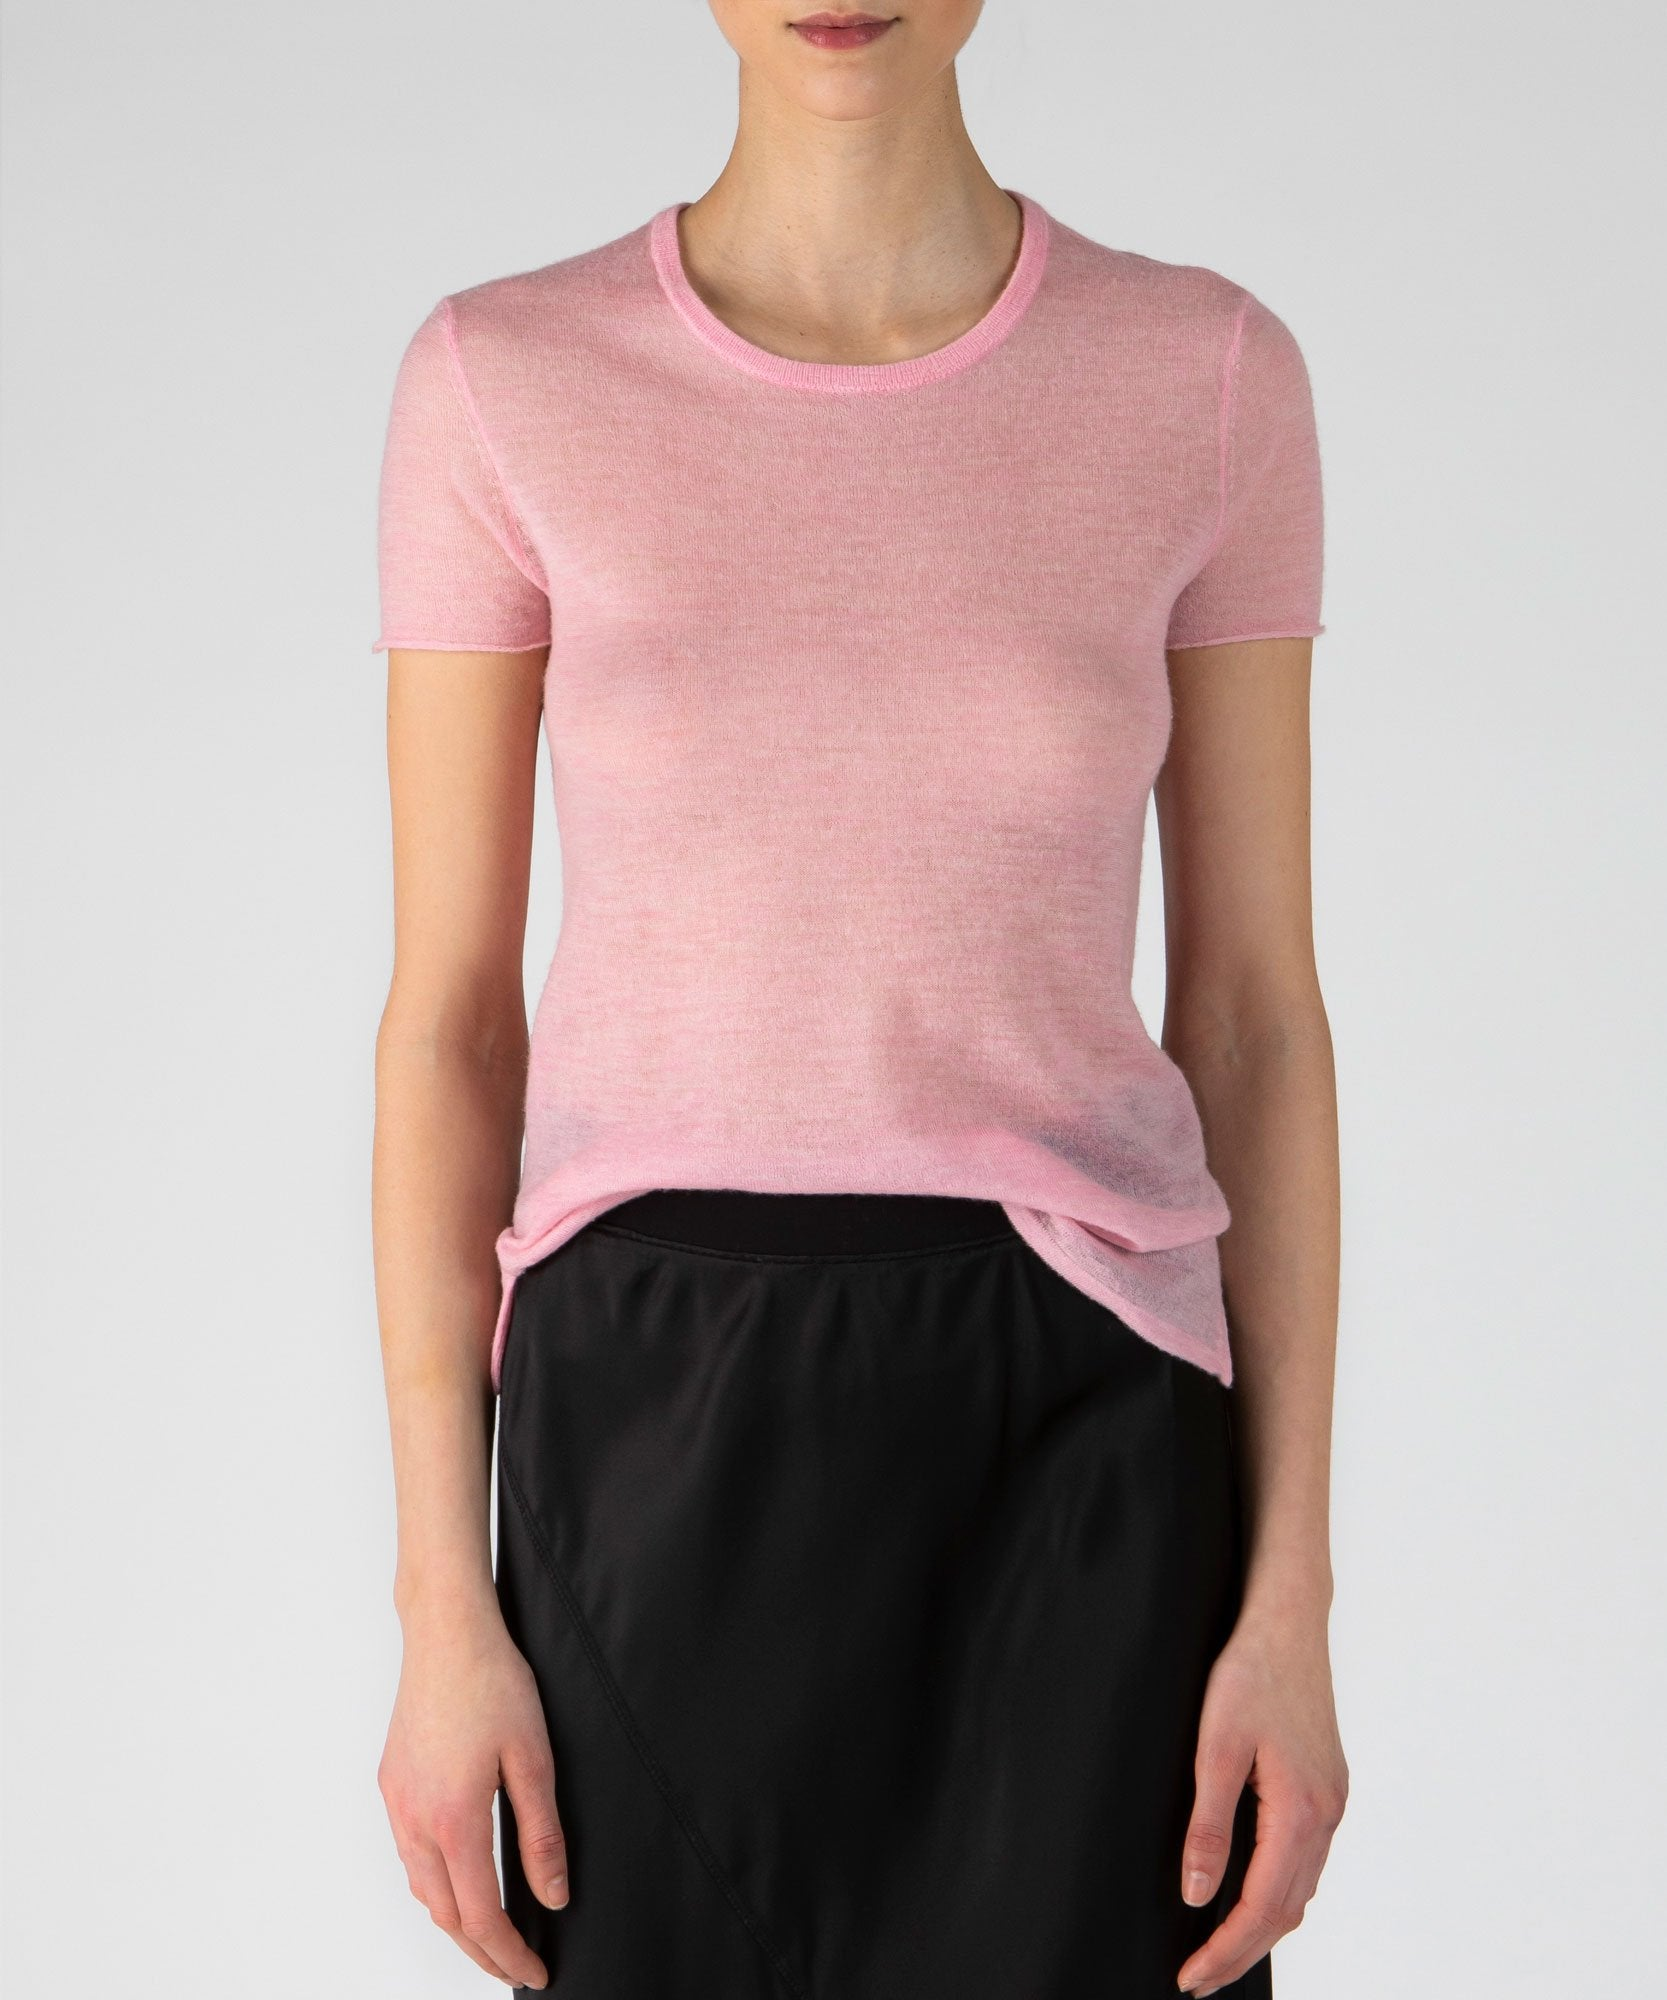 Ballet Pink Feather Weight Cashmere Crew Neck Tee - Women's Luxe Sweater by ATM Anthony Thomas Melillo